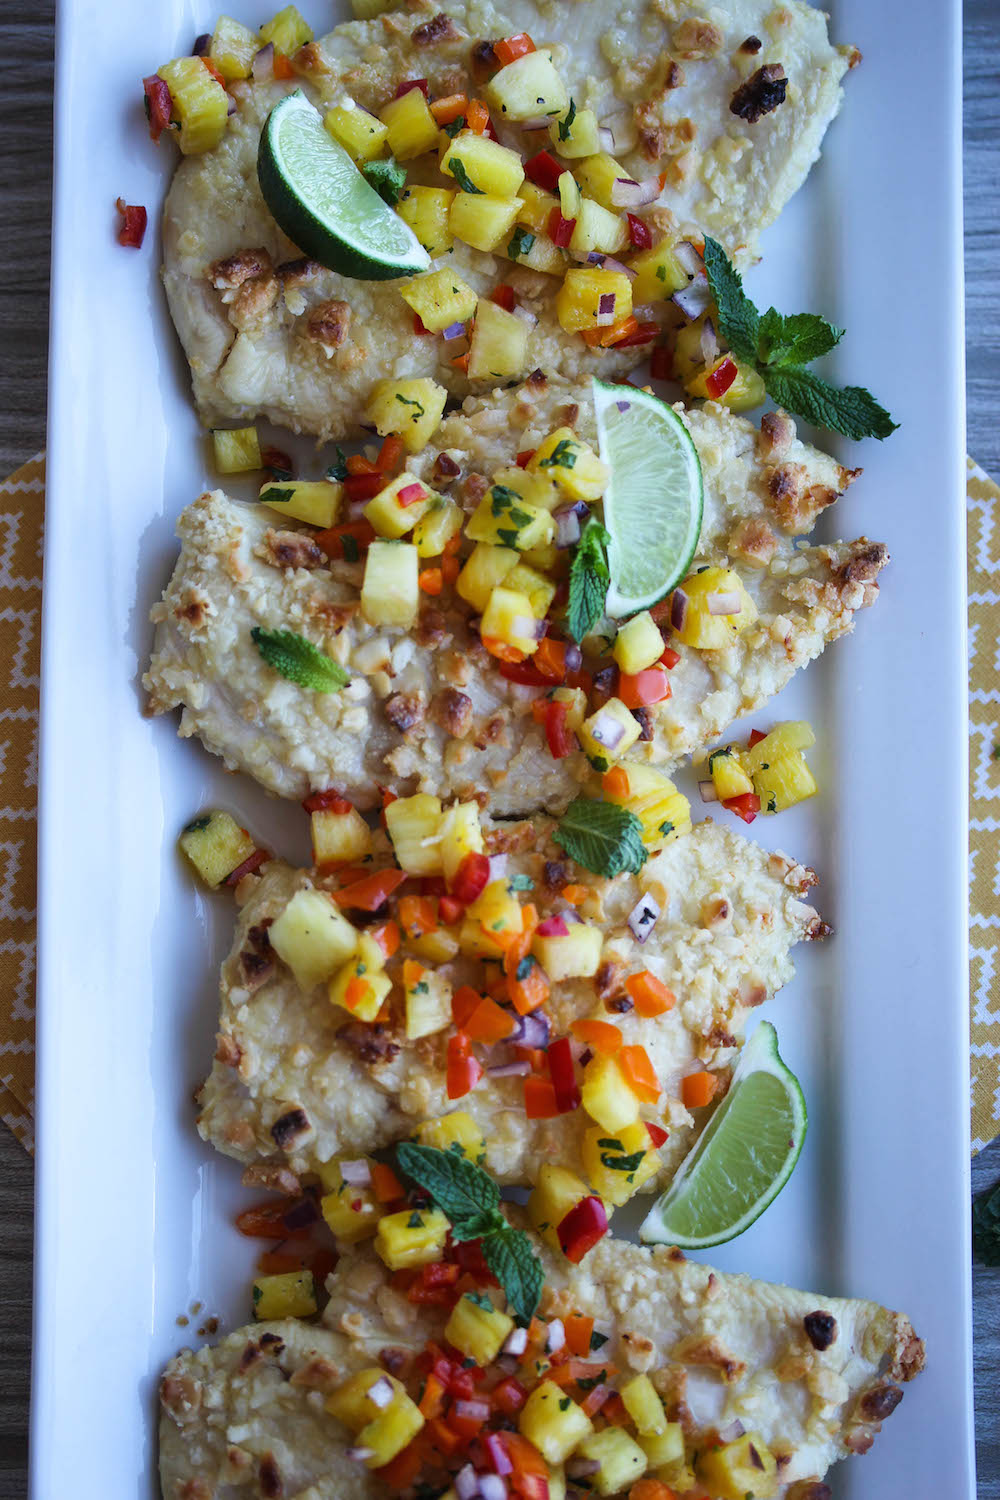 Macadamia Crusted Chicken With Pineapple Mint Salsa